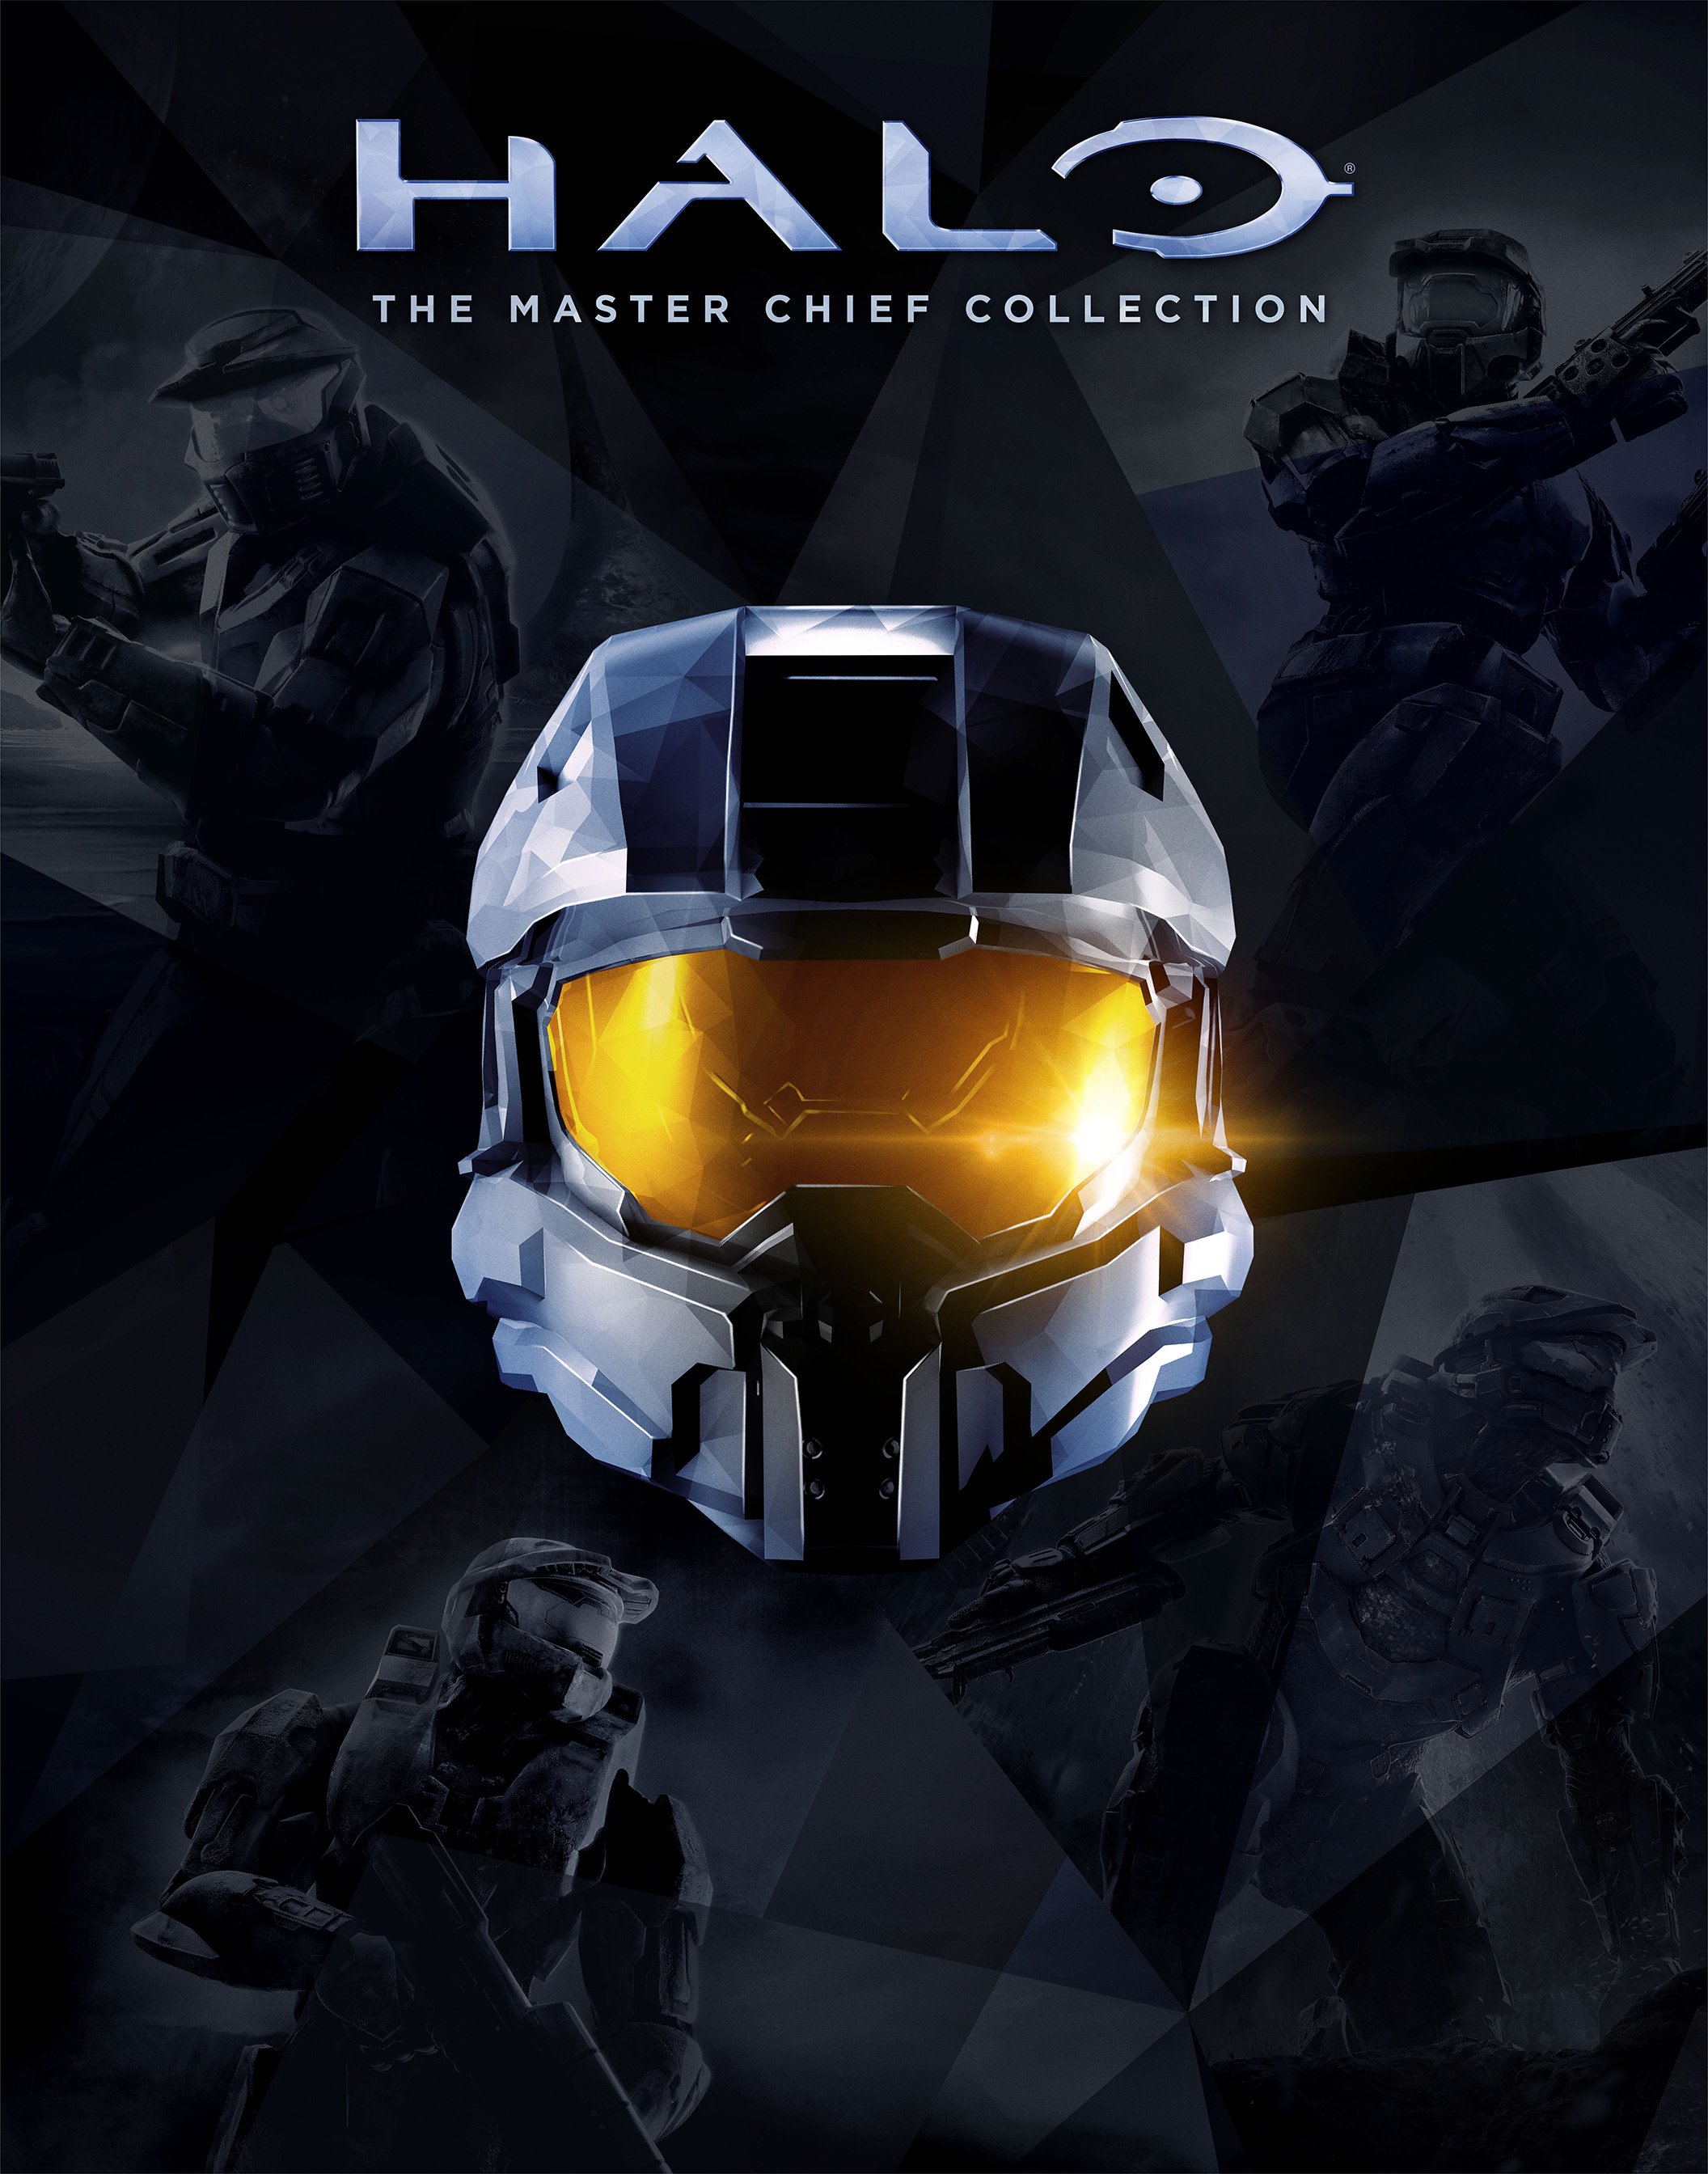 halo-the-master-chief-collection-key-art-vertical-final